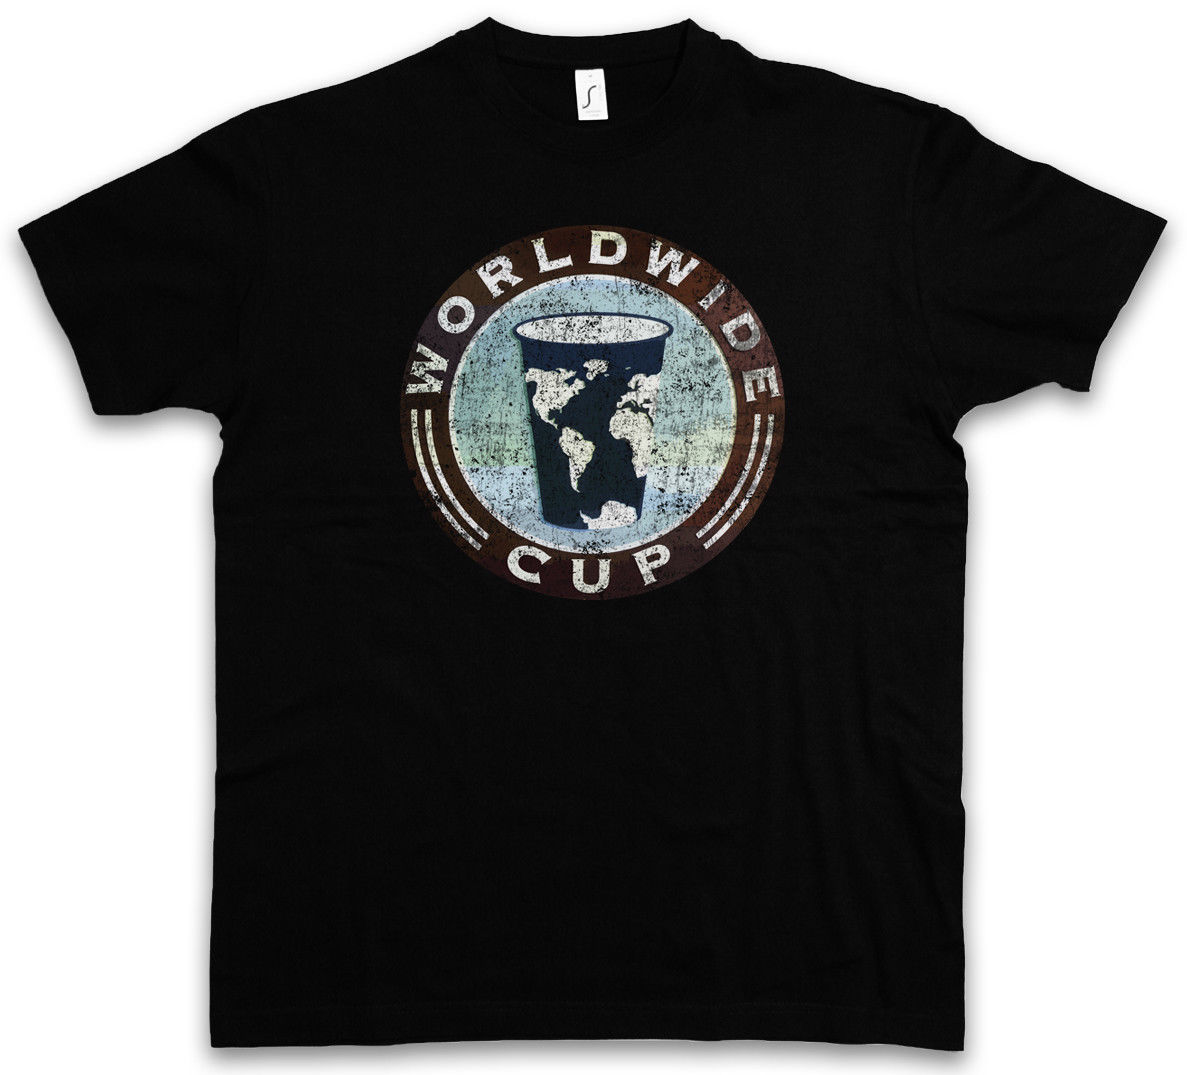 Short sleeve t shirt WORLDWIDE CUP T-SHIRT - Shameless Frank Gallagher Coffee Shop Cafe Sizes S - 5XL